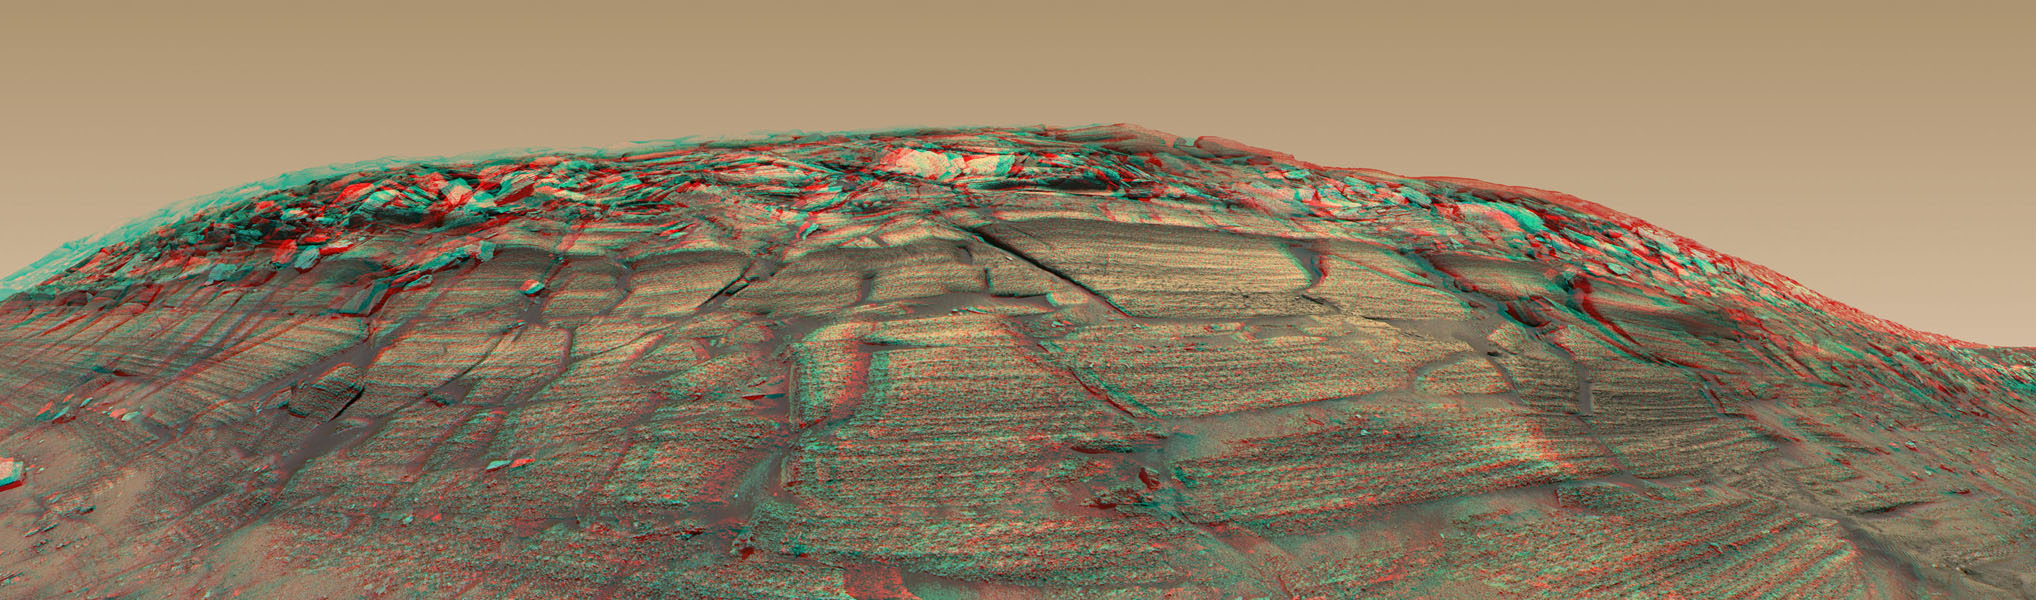 NASA's Mars Exploration Rover Opportunity captured a sweeping stereo image of 'Burns Cliff' after driving right to the base of this southeastern portion of the inner wall of 'Endurance Crater' in November 2004. 3D glasses are necessary to view this image.